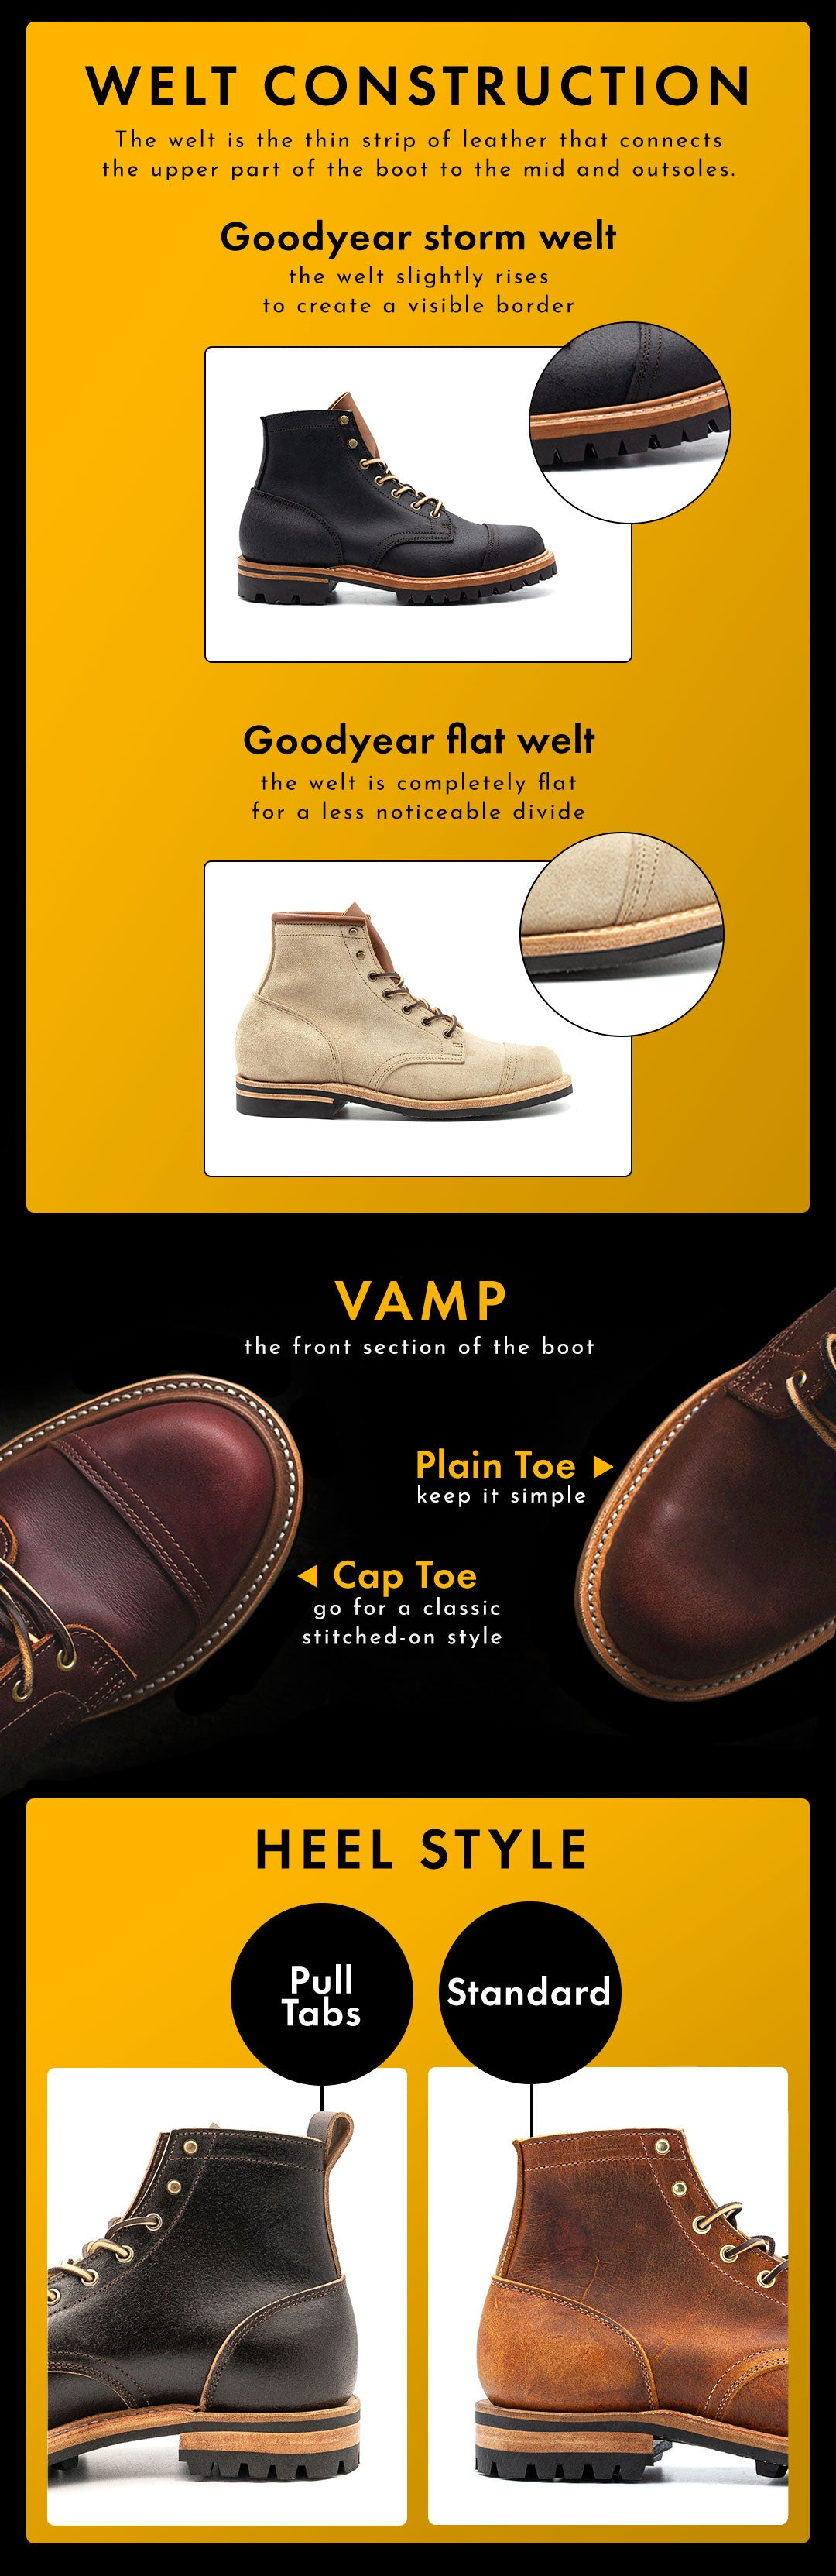 explanation of welt, heel and vamp options